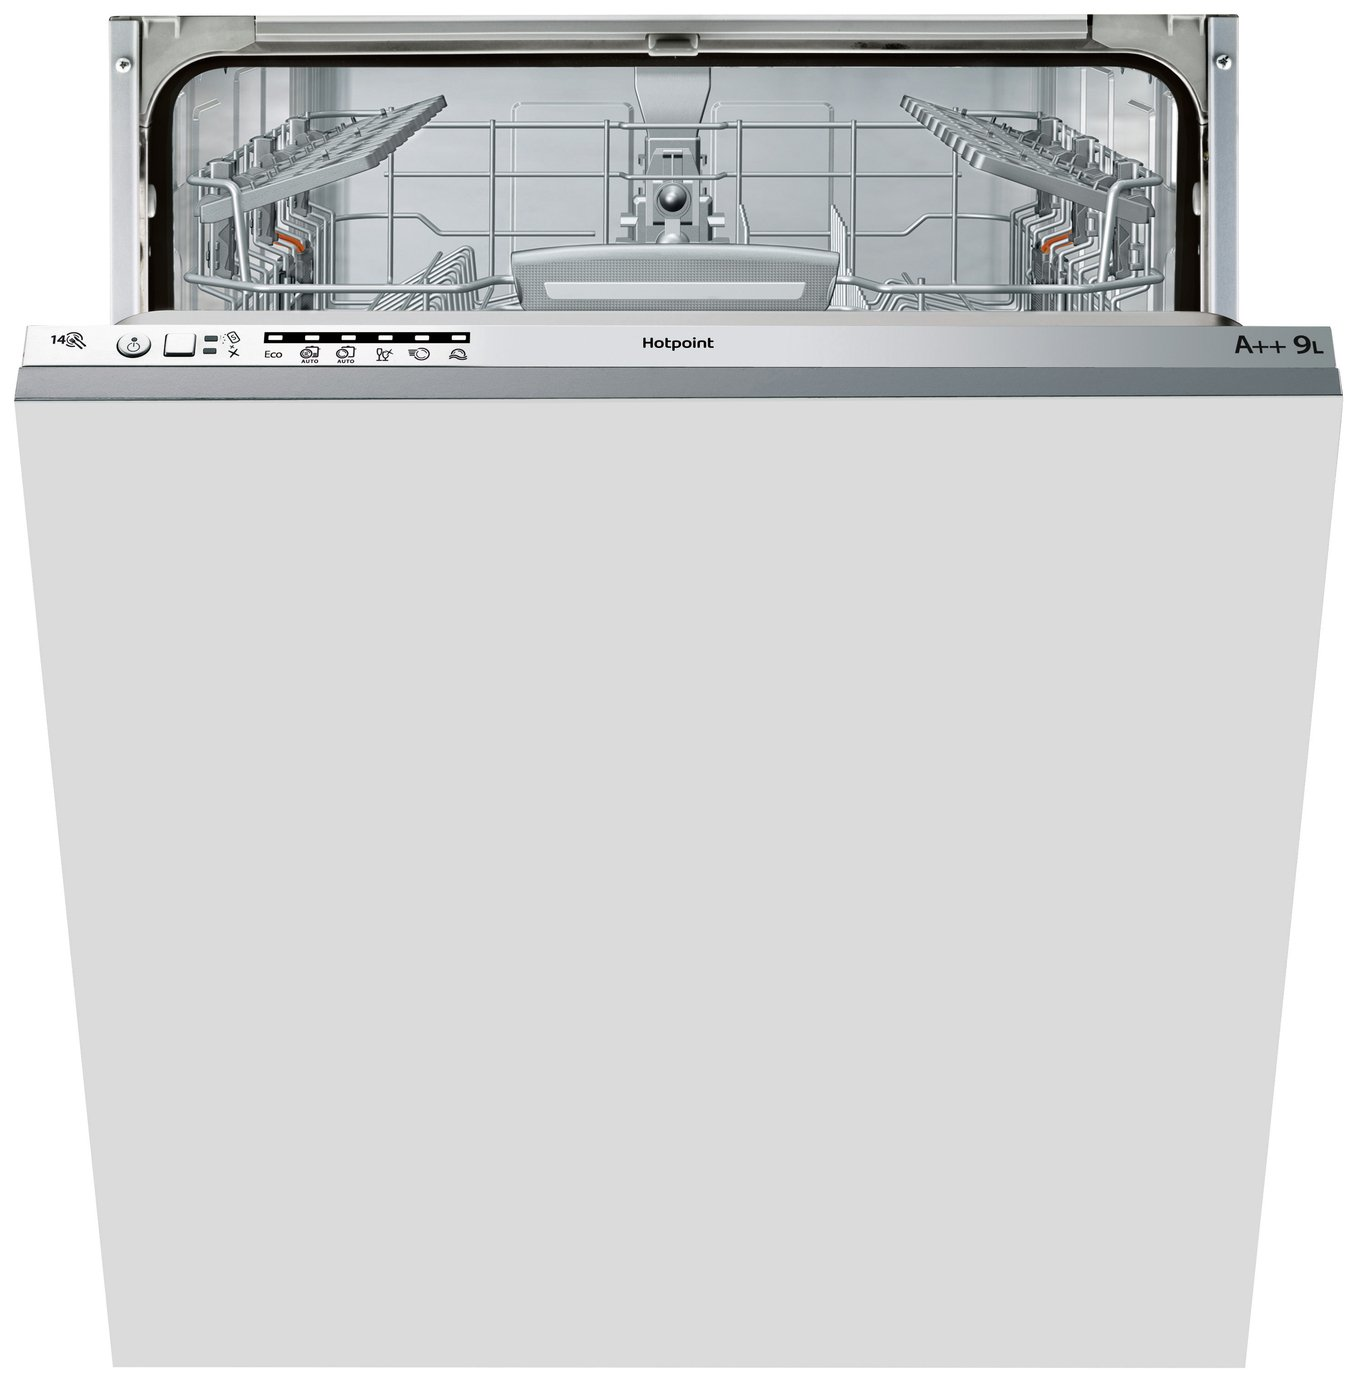 Hotpoint LTB6M126 Built-in Dishwasher - Graphite